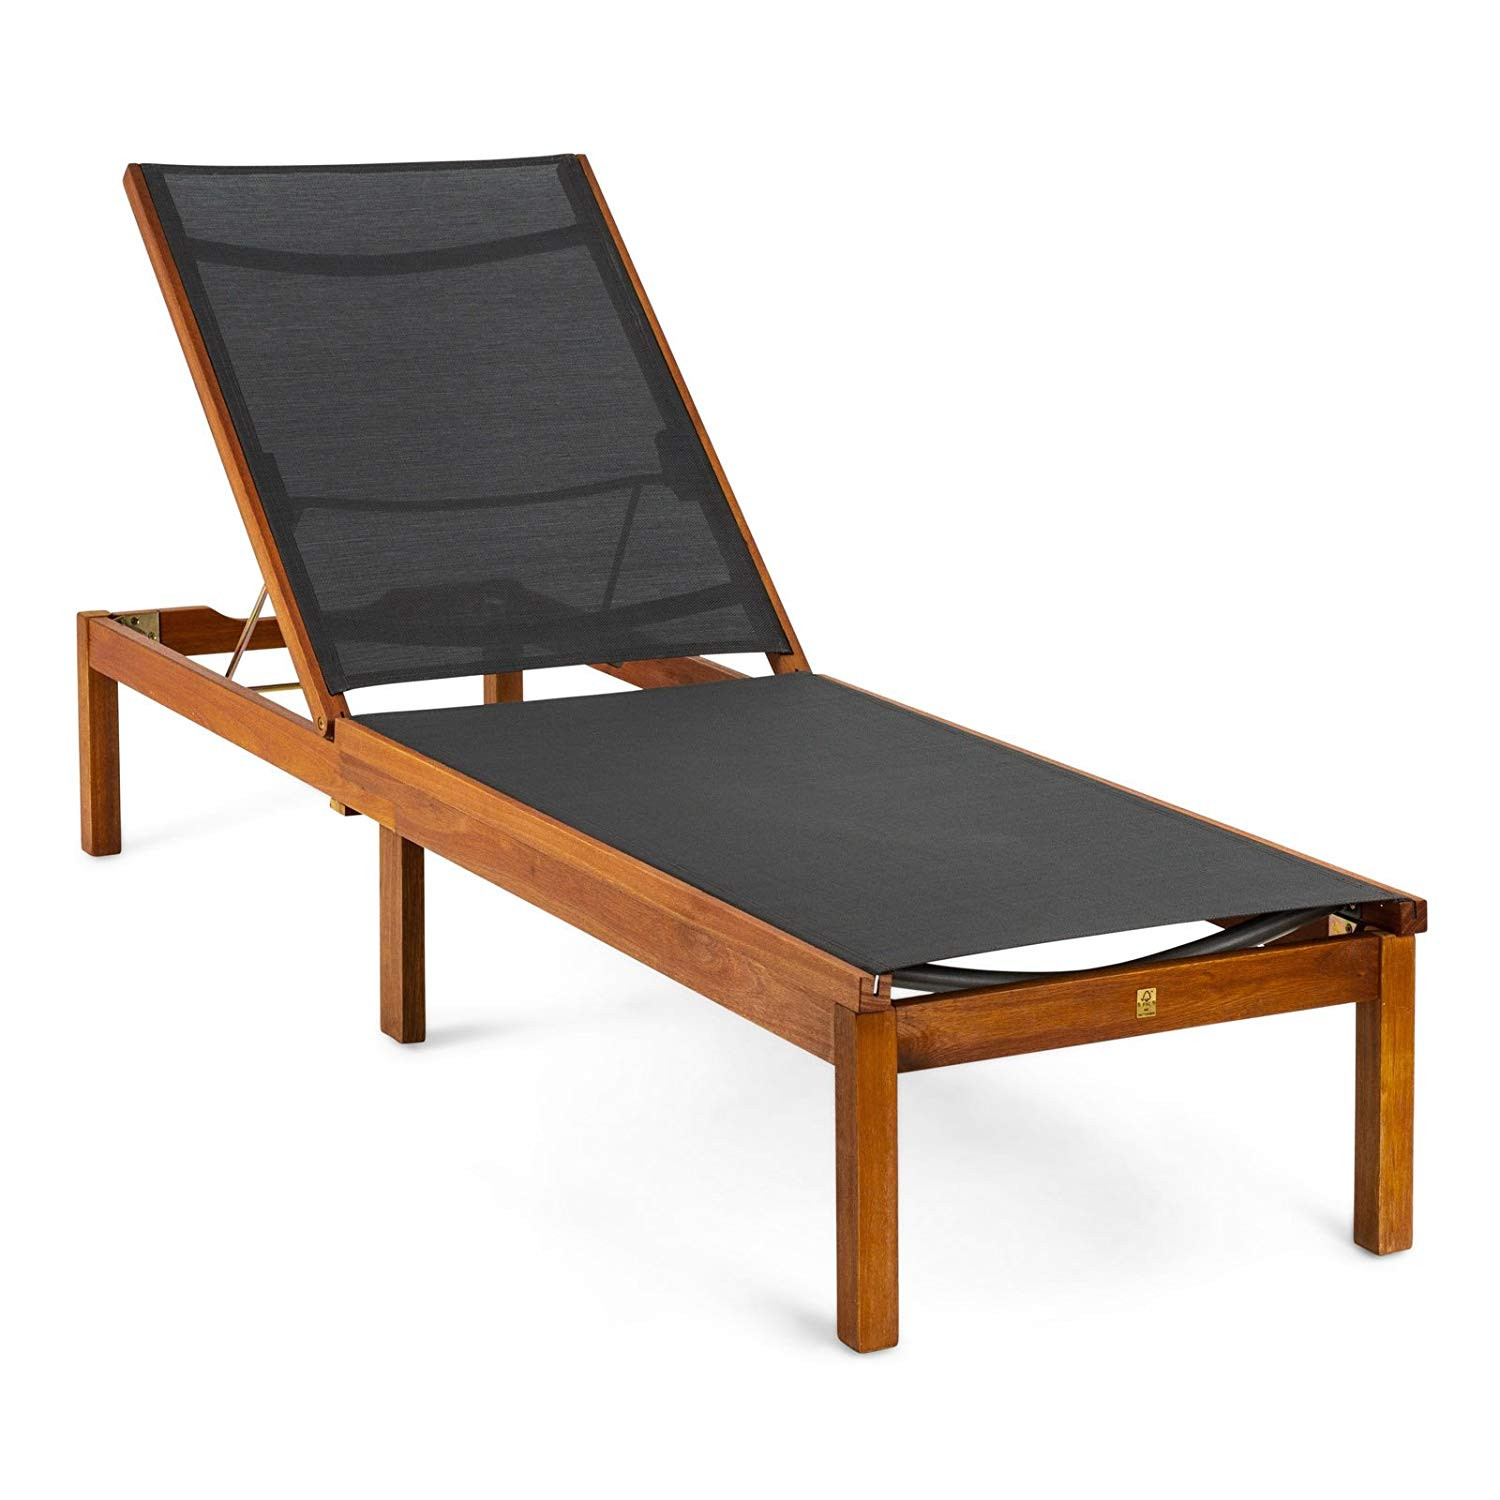 Kingsbury Lounger Garden With Wheels, Eucalyptus Wood Fsc, Steel And Textile-50021001168556